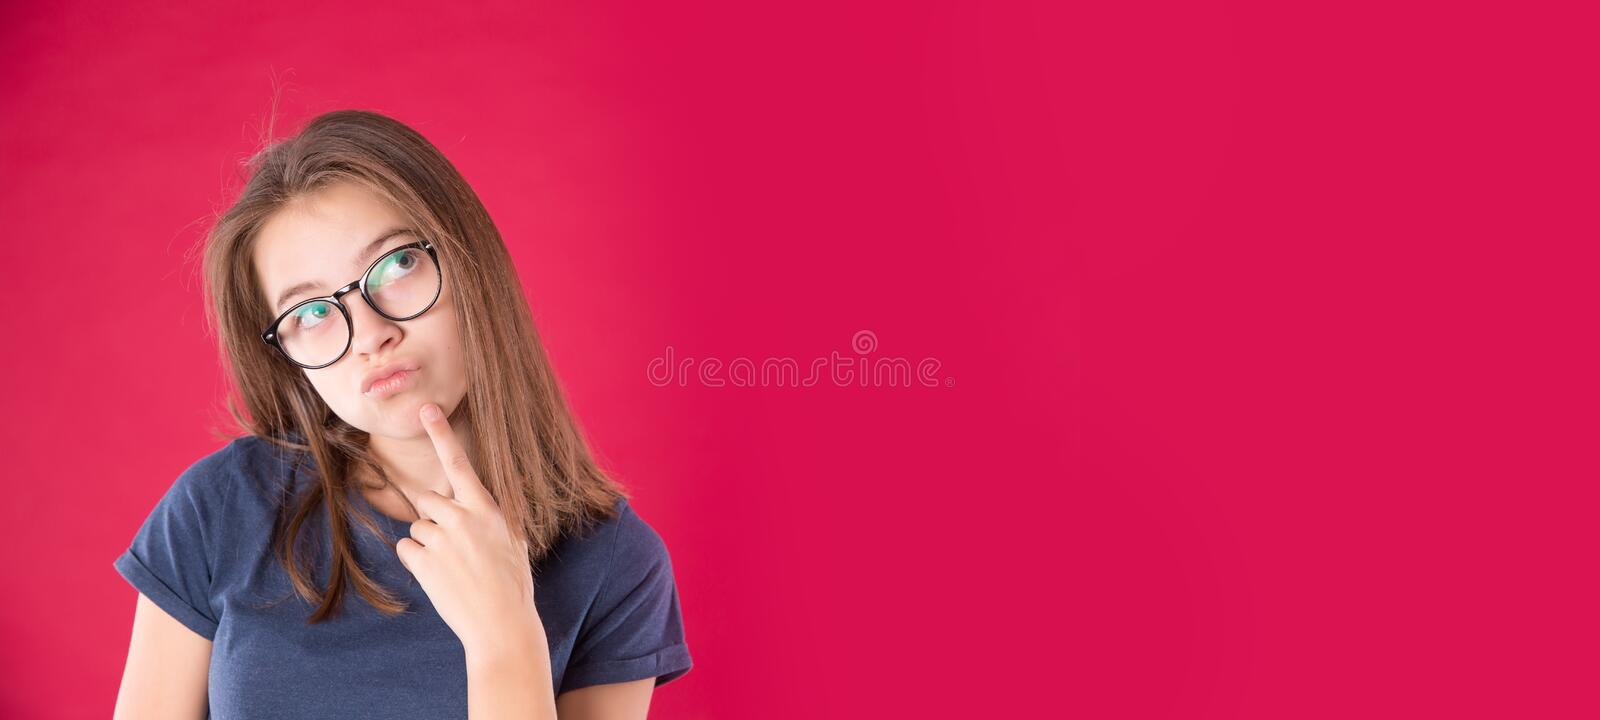 Portrait of young attractive girl with glasses holding her chin looking sideways on red pink background stock photo